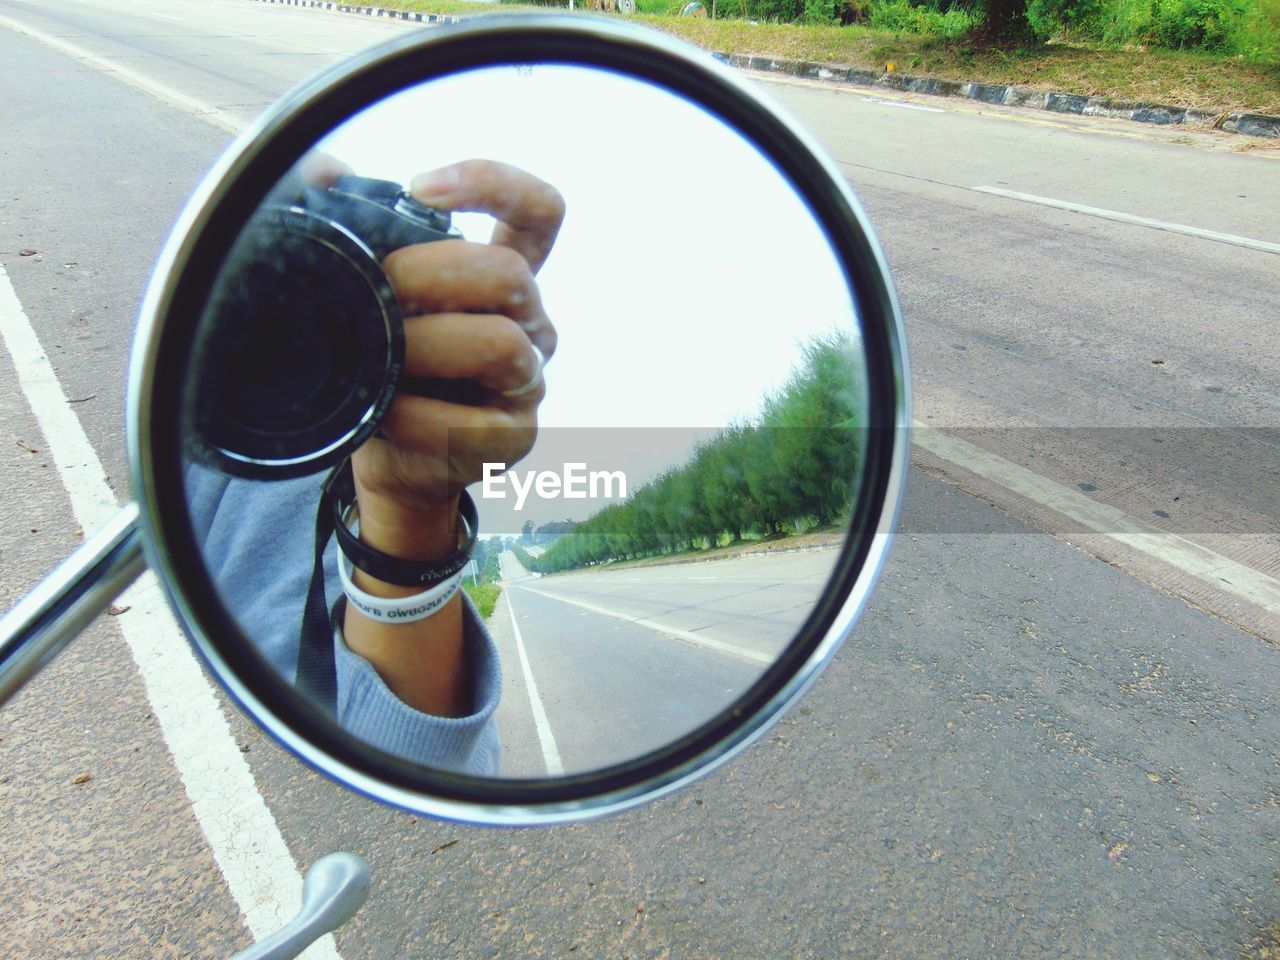 CLOSE-UP OF HAND ON SIDE-VIEW MIRROR OF CAR